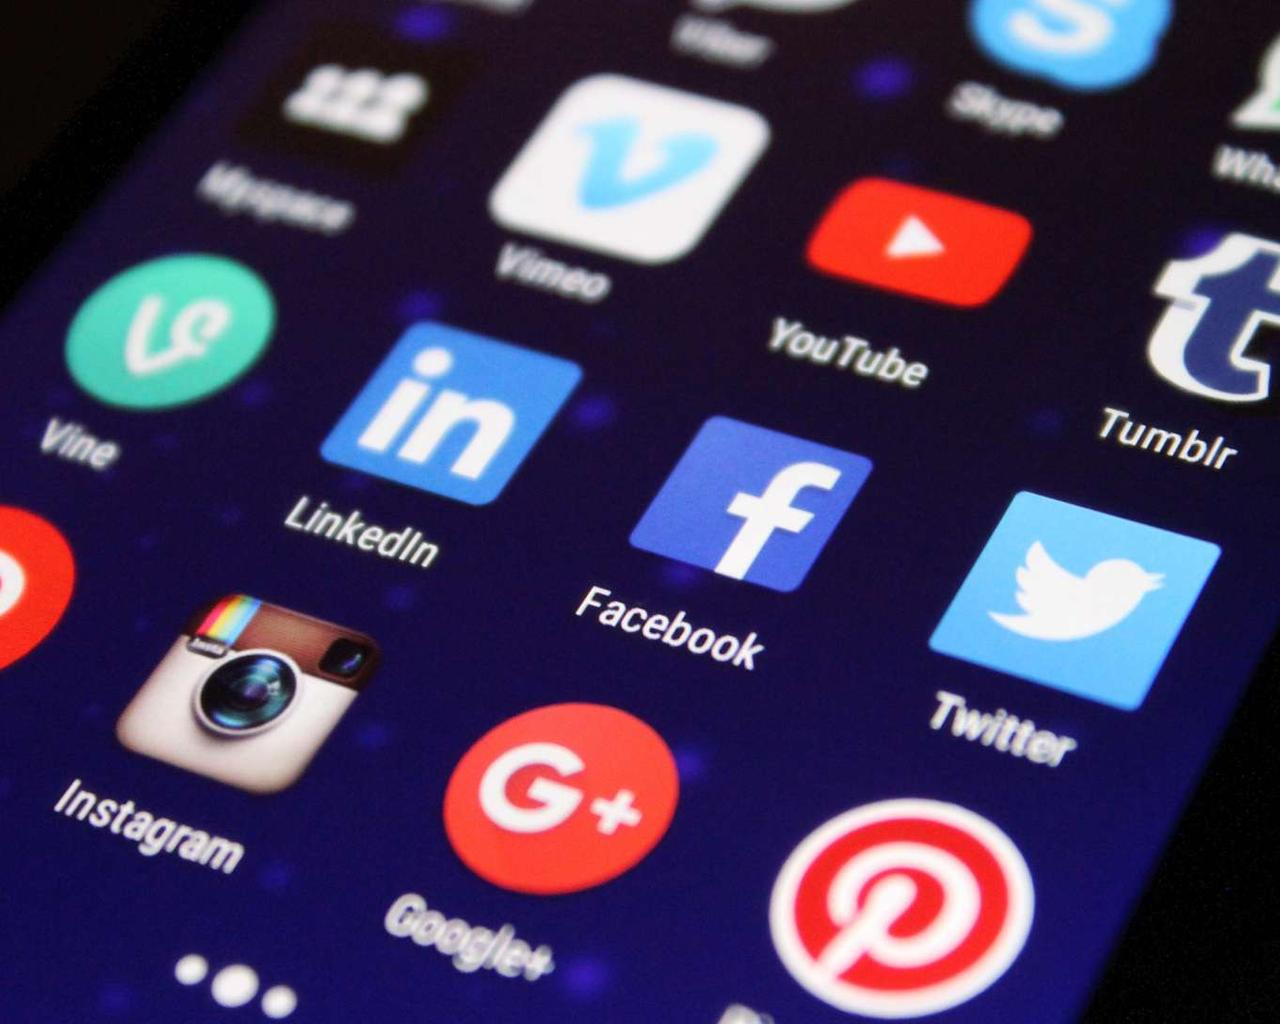 How to Stay Updated About the Latest News Via Social Media